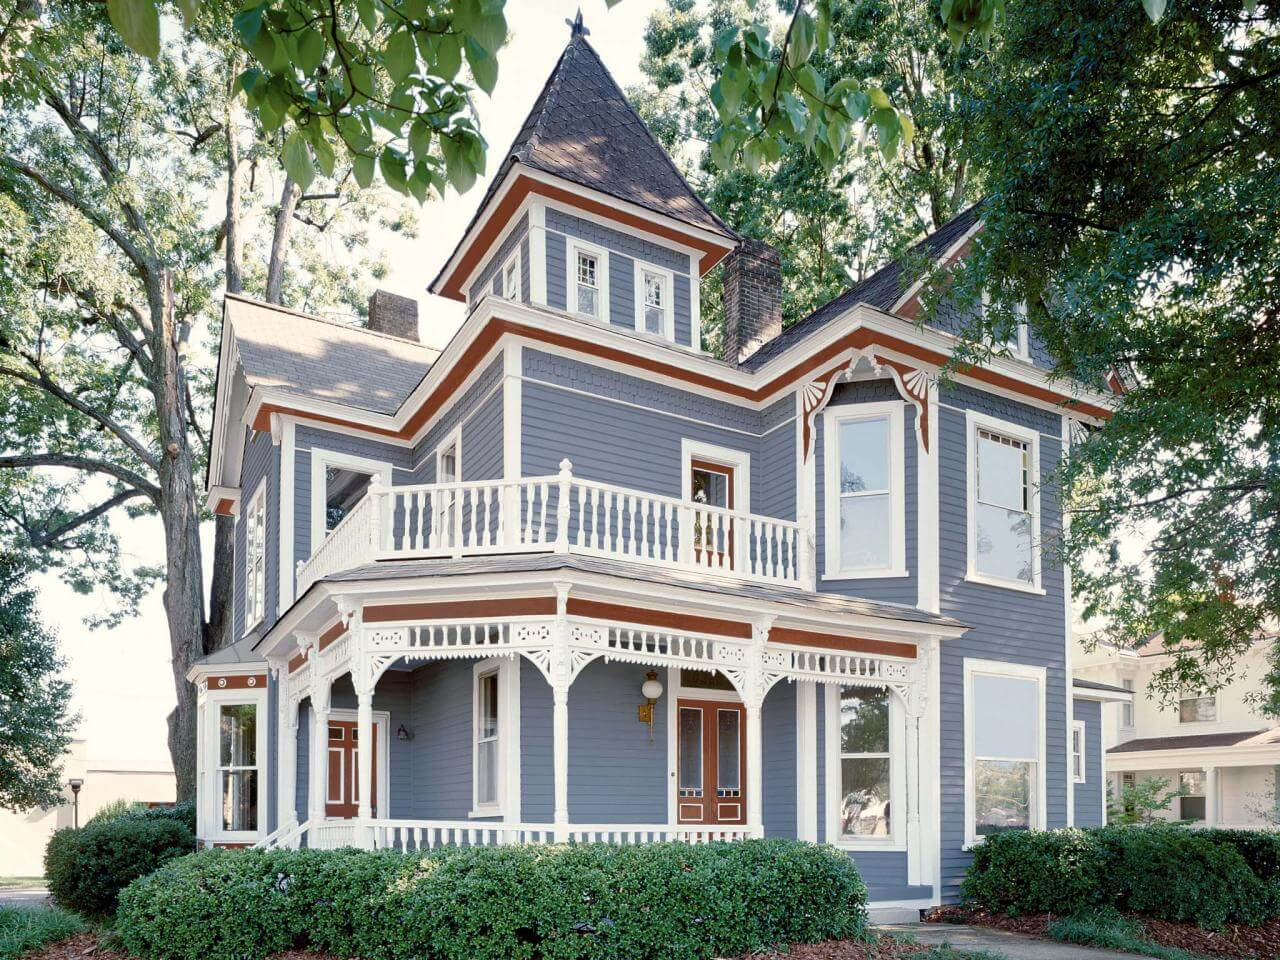 Make sure the architecture is in line with the homeowner's association